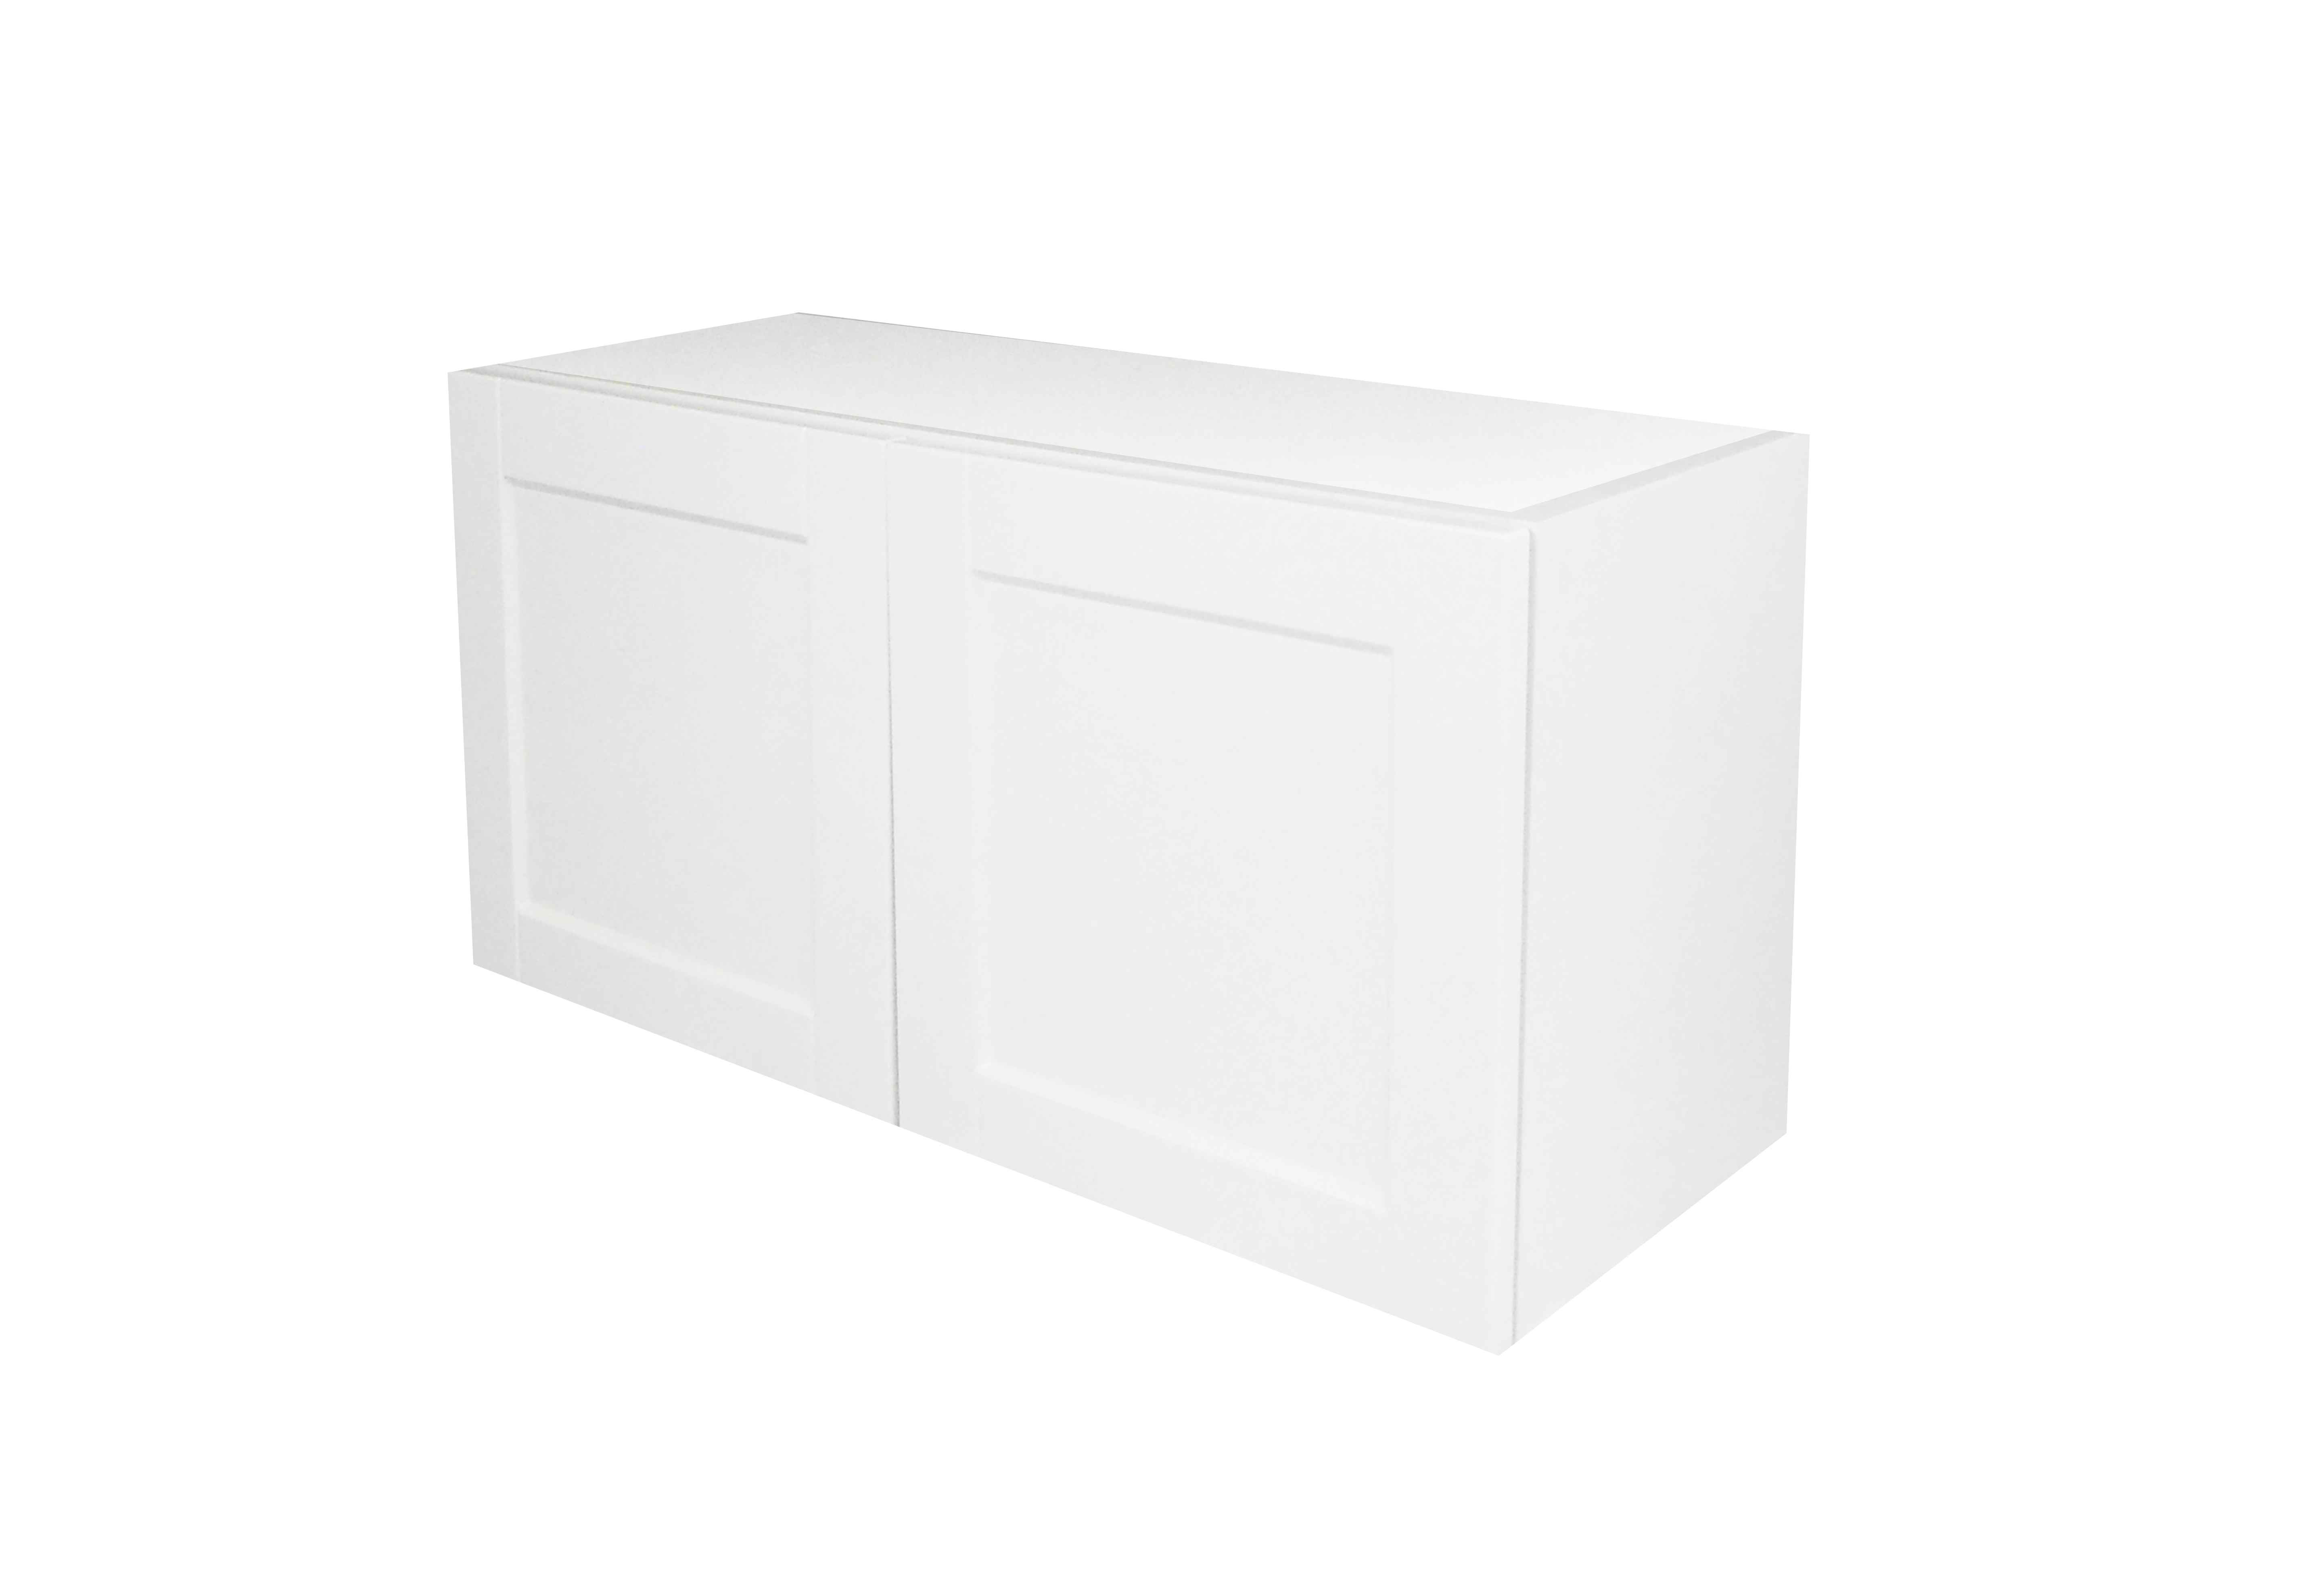 Appliance Wall Cabinet with 2 Doors / Flat Panel White / 36x18 Solaire White 0